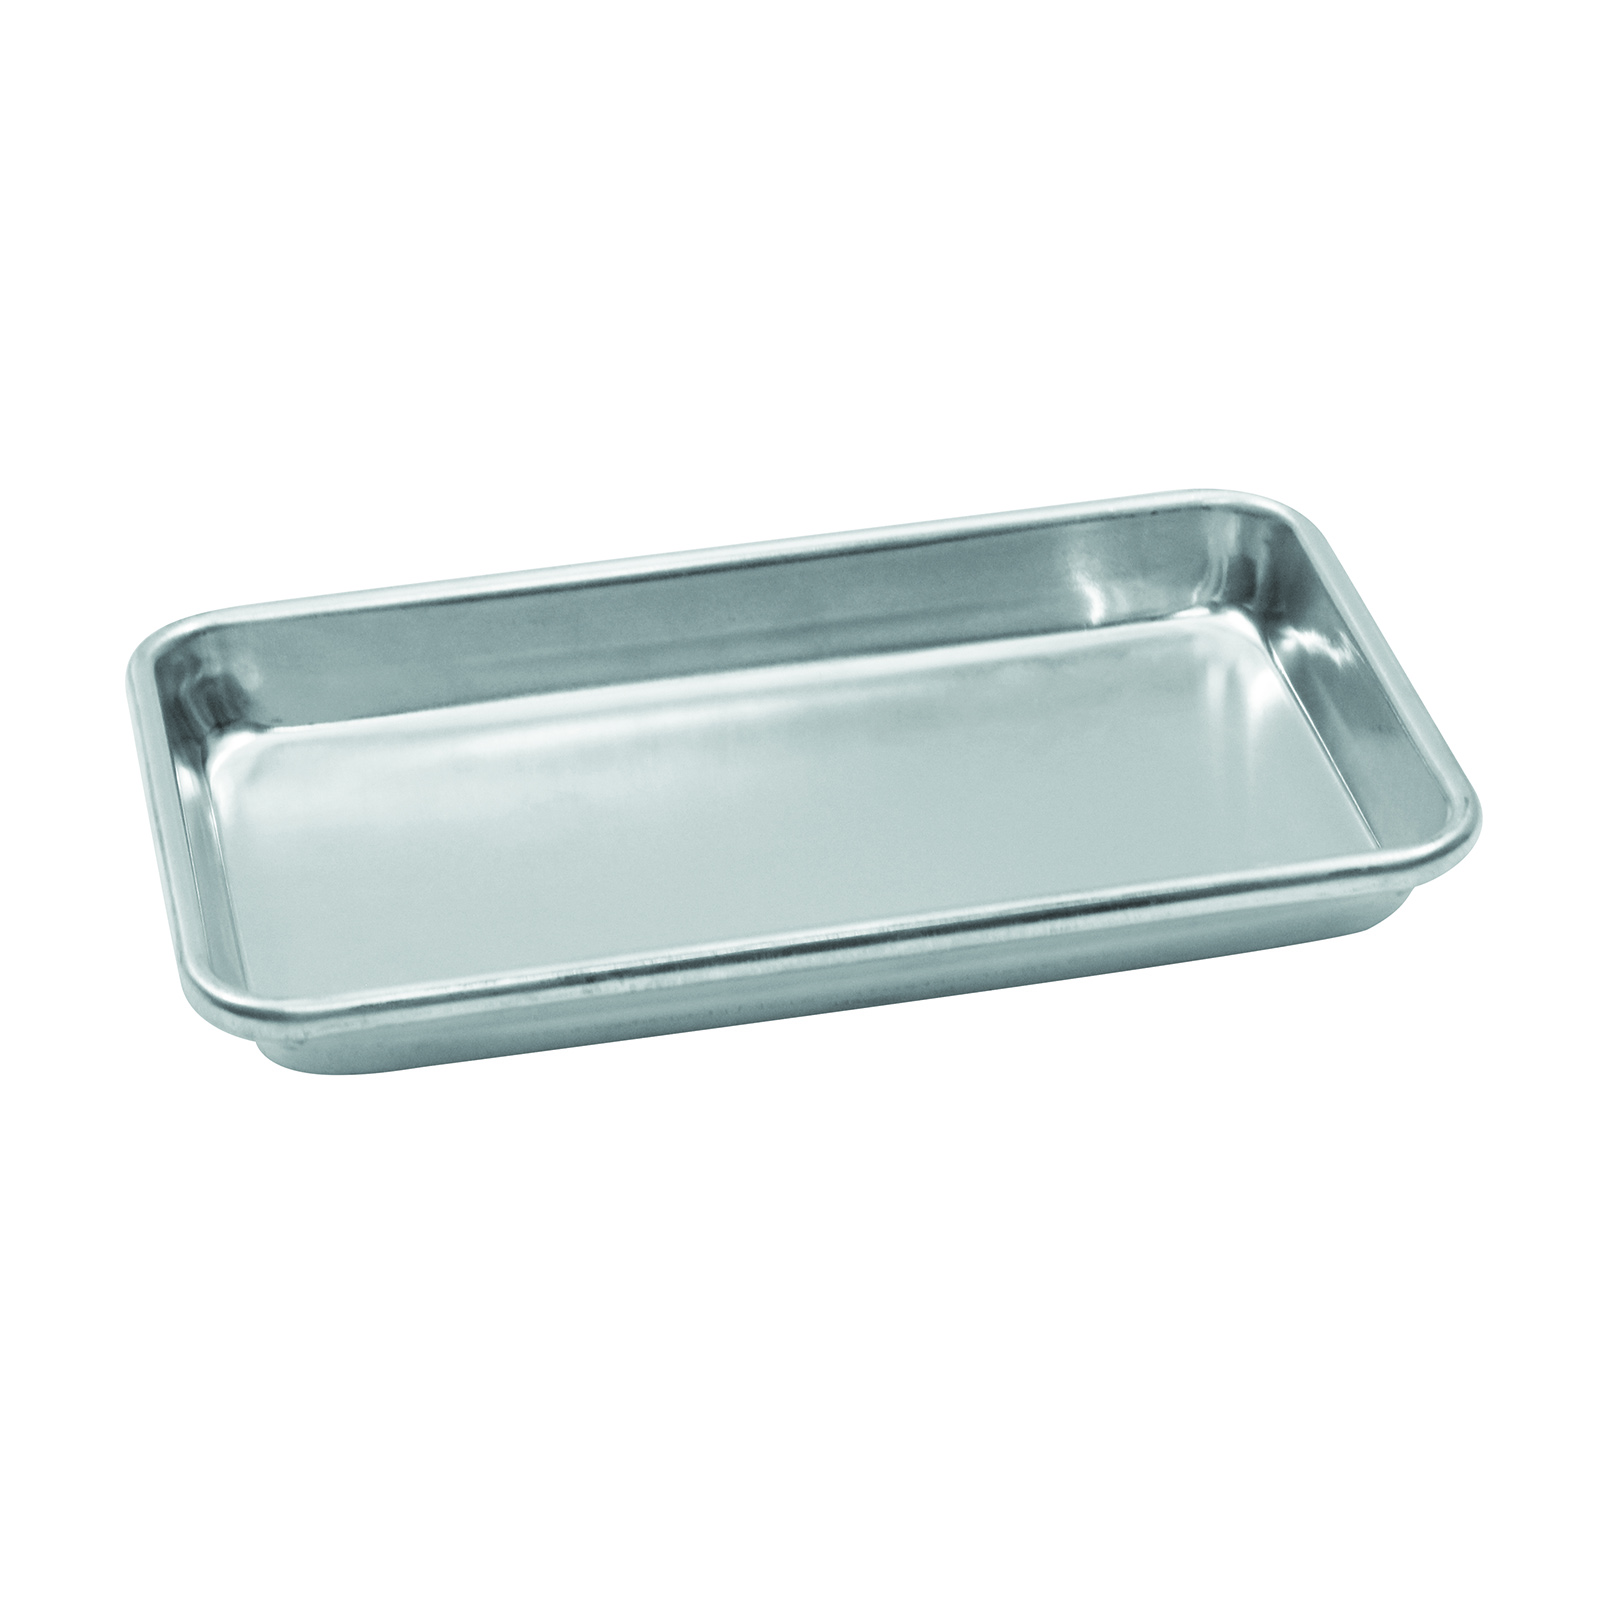 TableCraft Products 1006AS bun / sheet pan